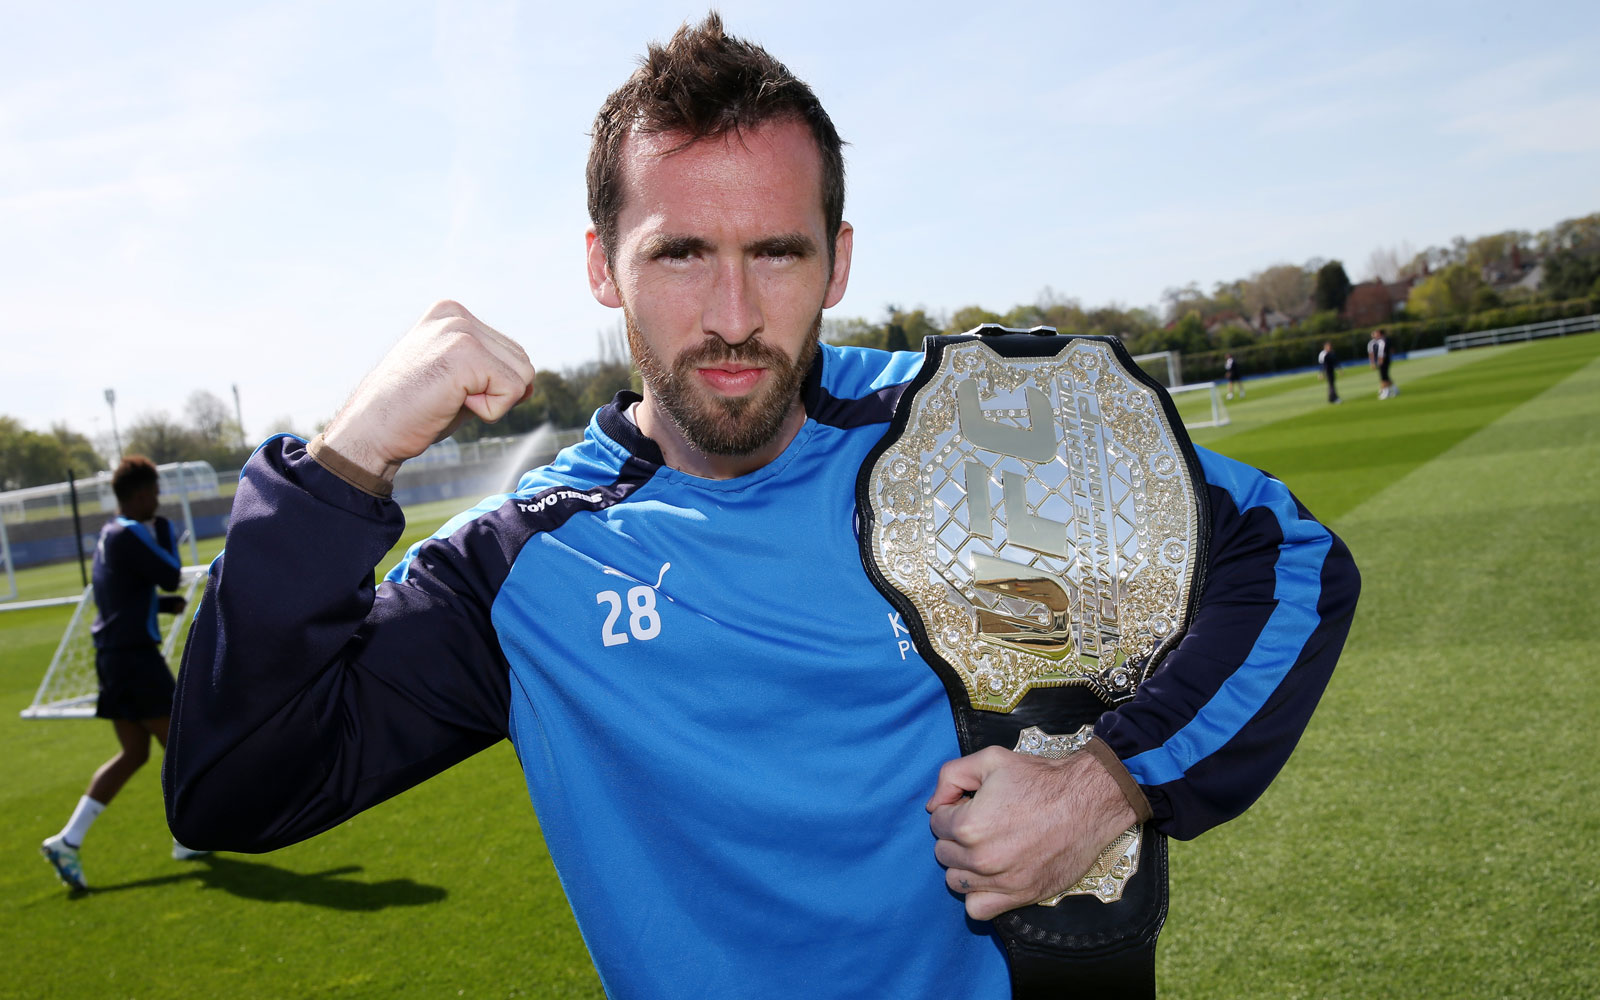 Leicester's Christian Fuchs poses with the UFC title belt as part of Leicester's title celebrations.